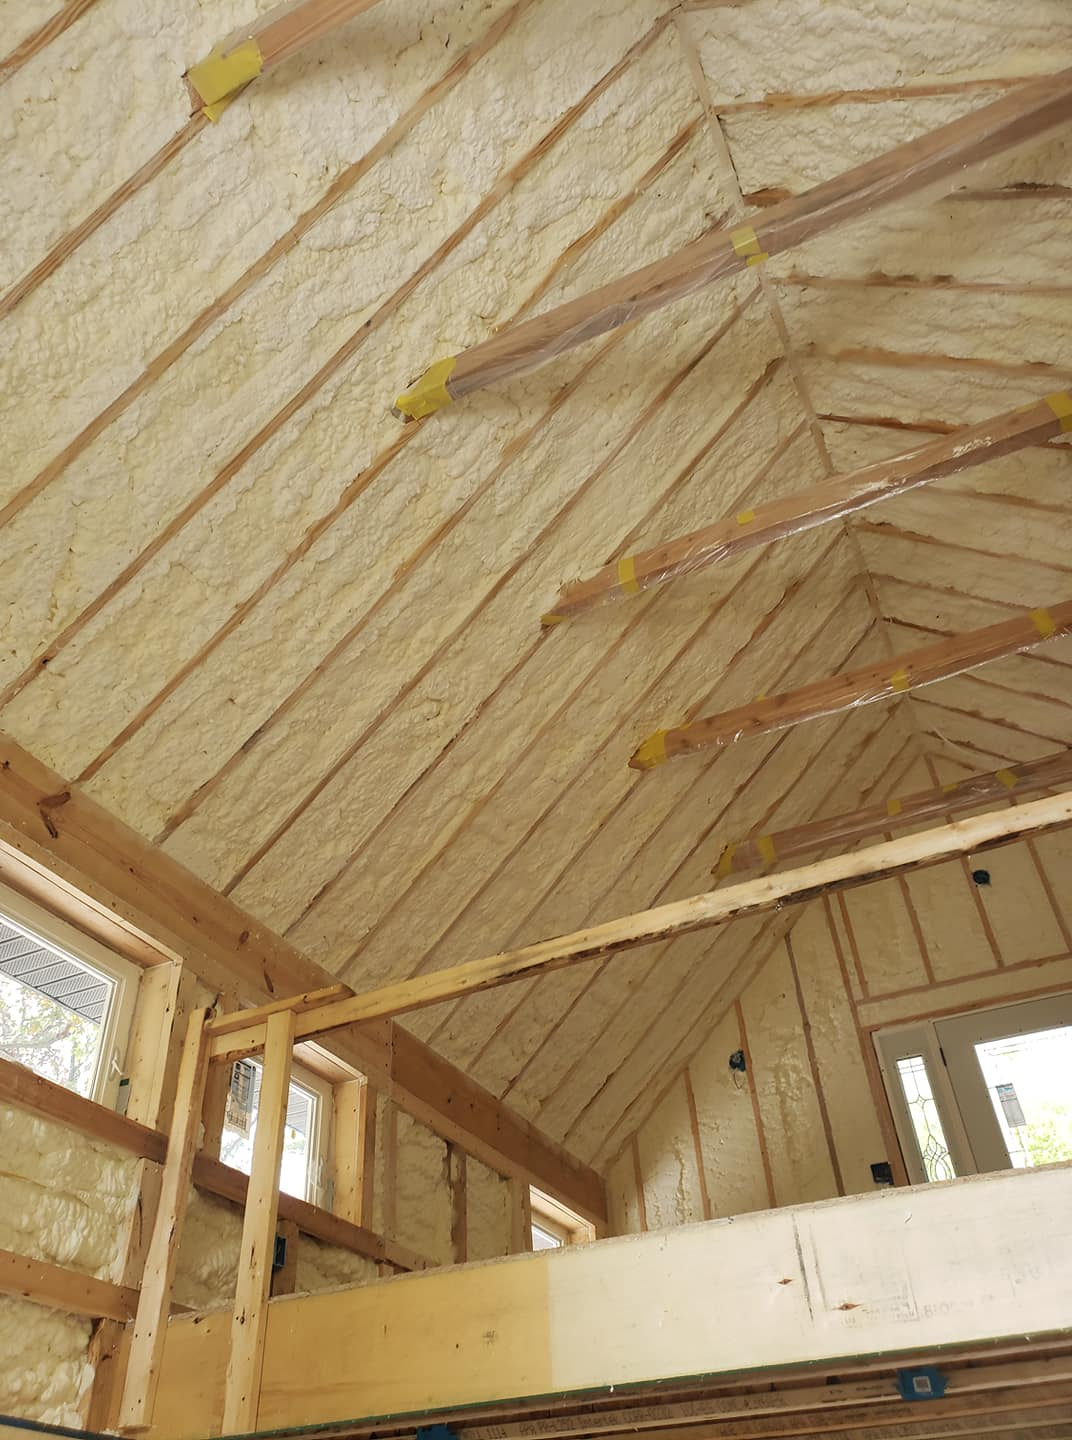 New Construction Spray Foam Insulation North Carolina